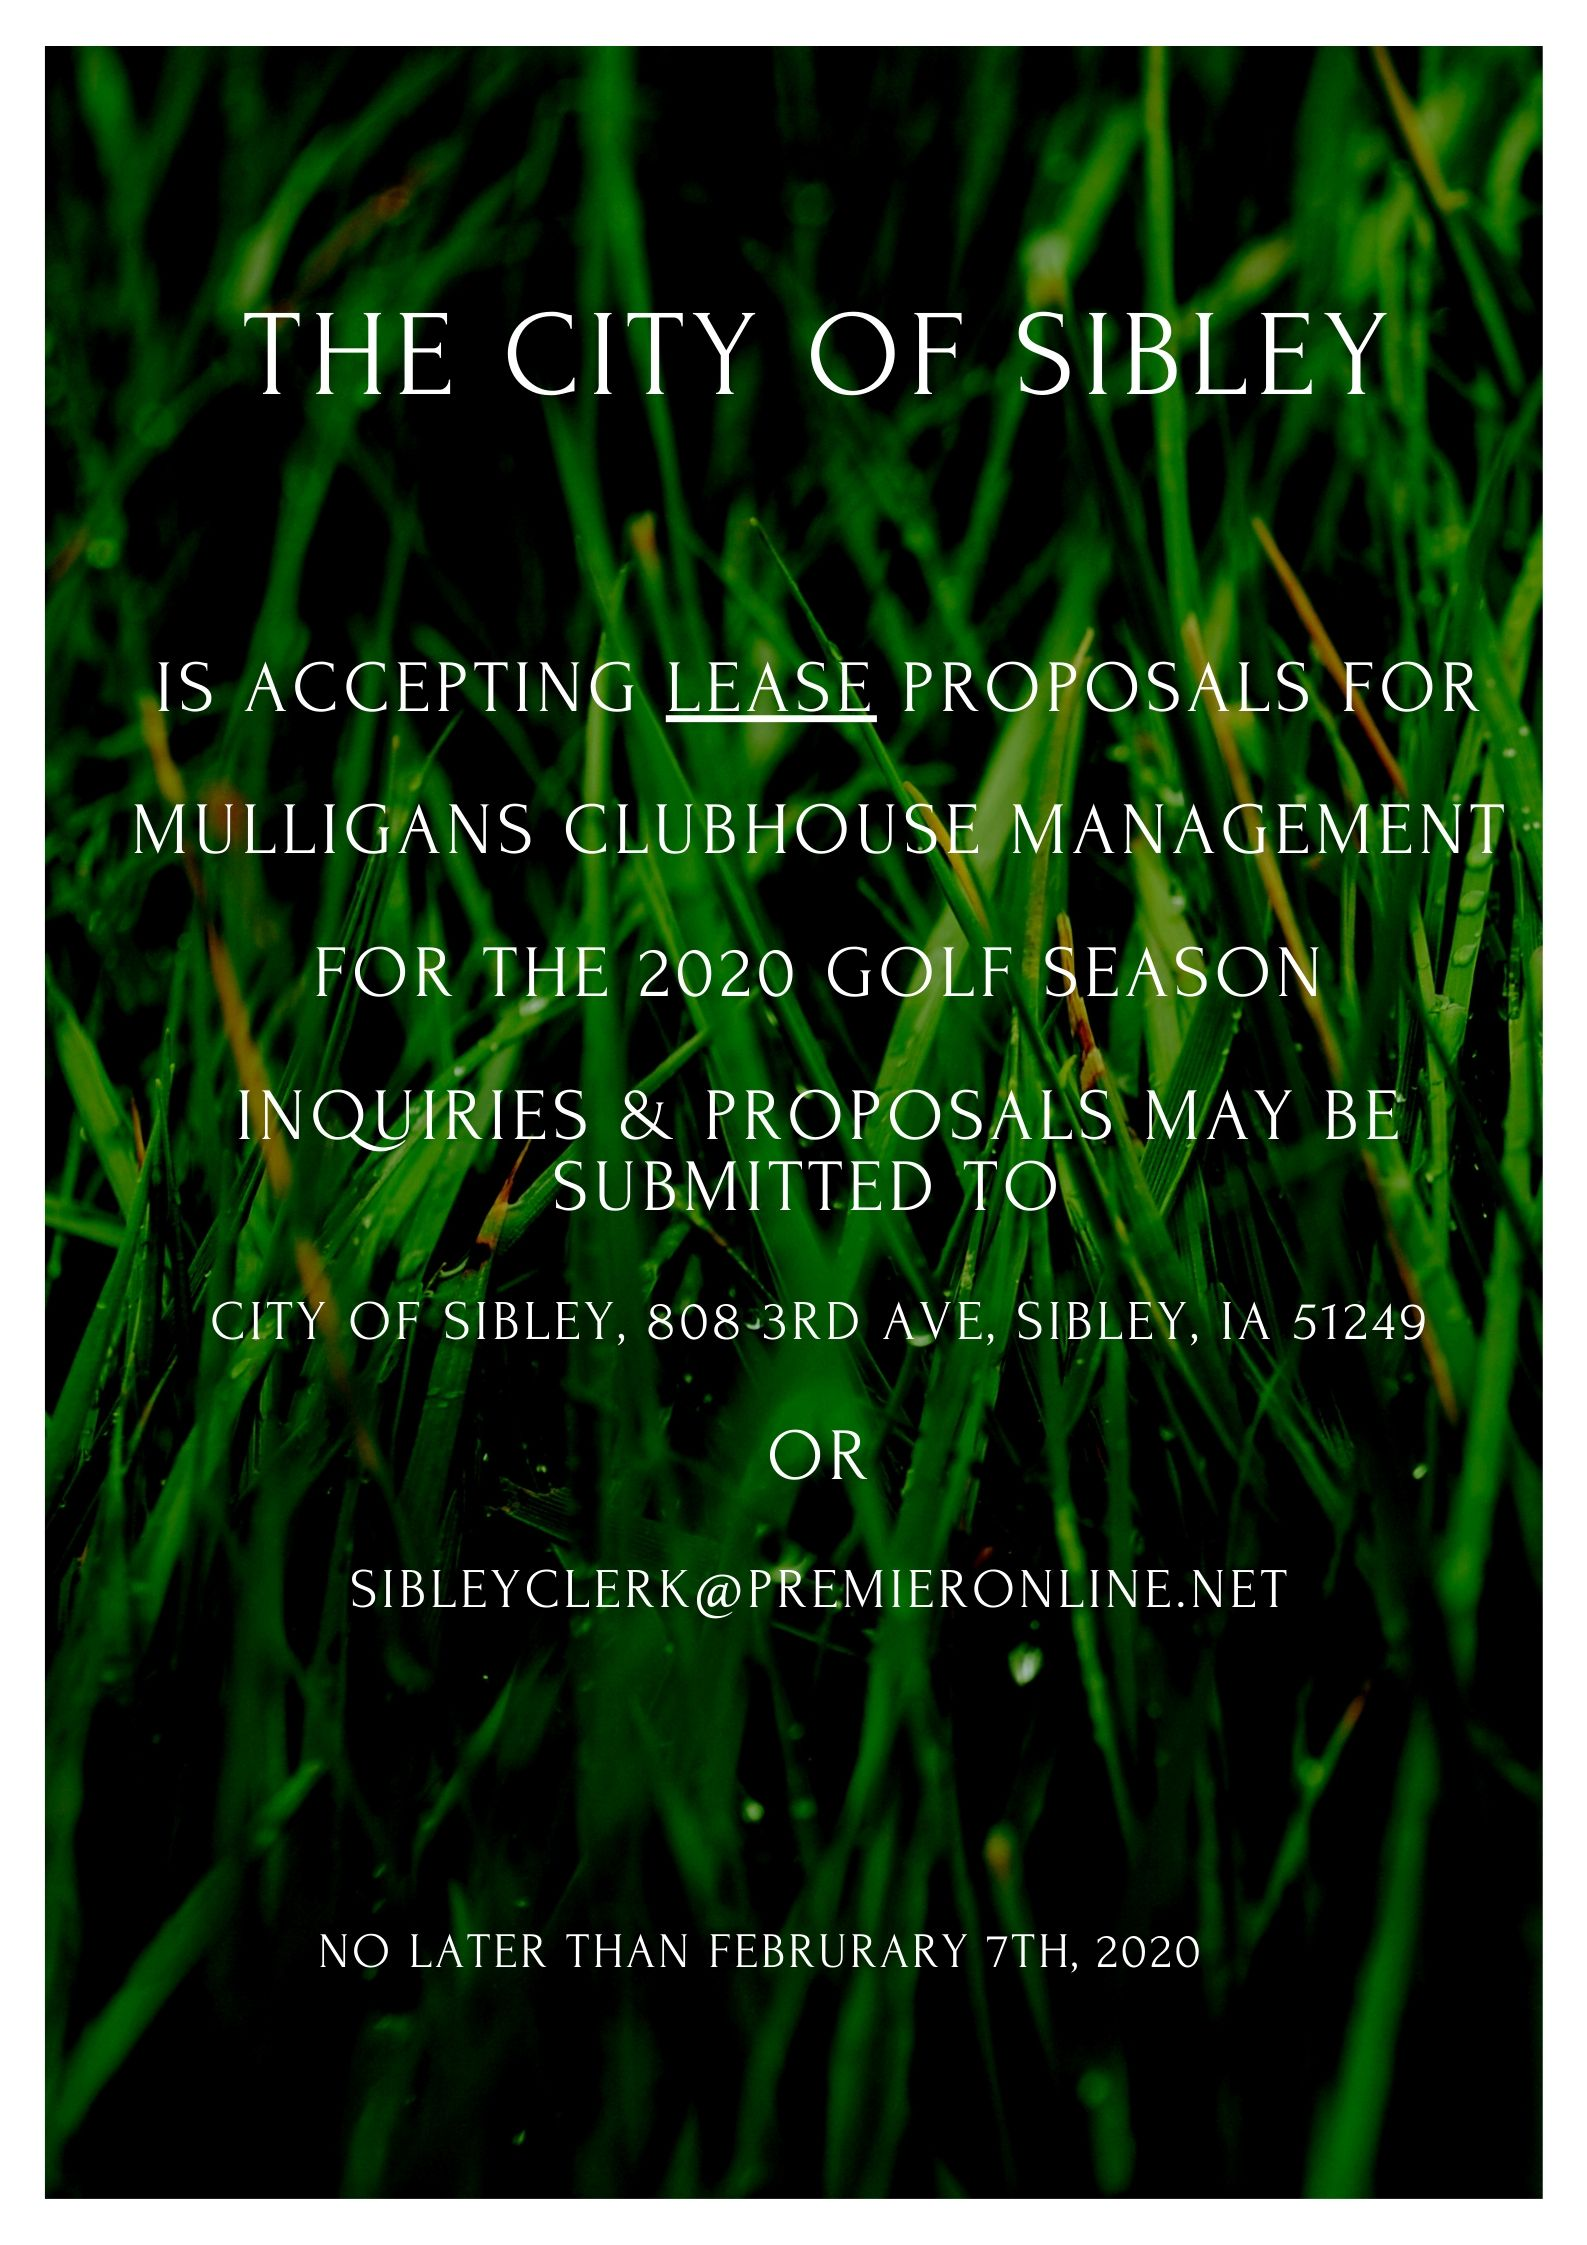 Lease proposals being accepted!